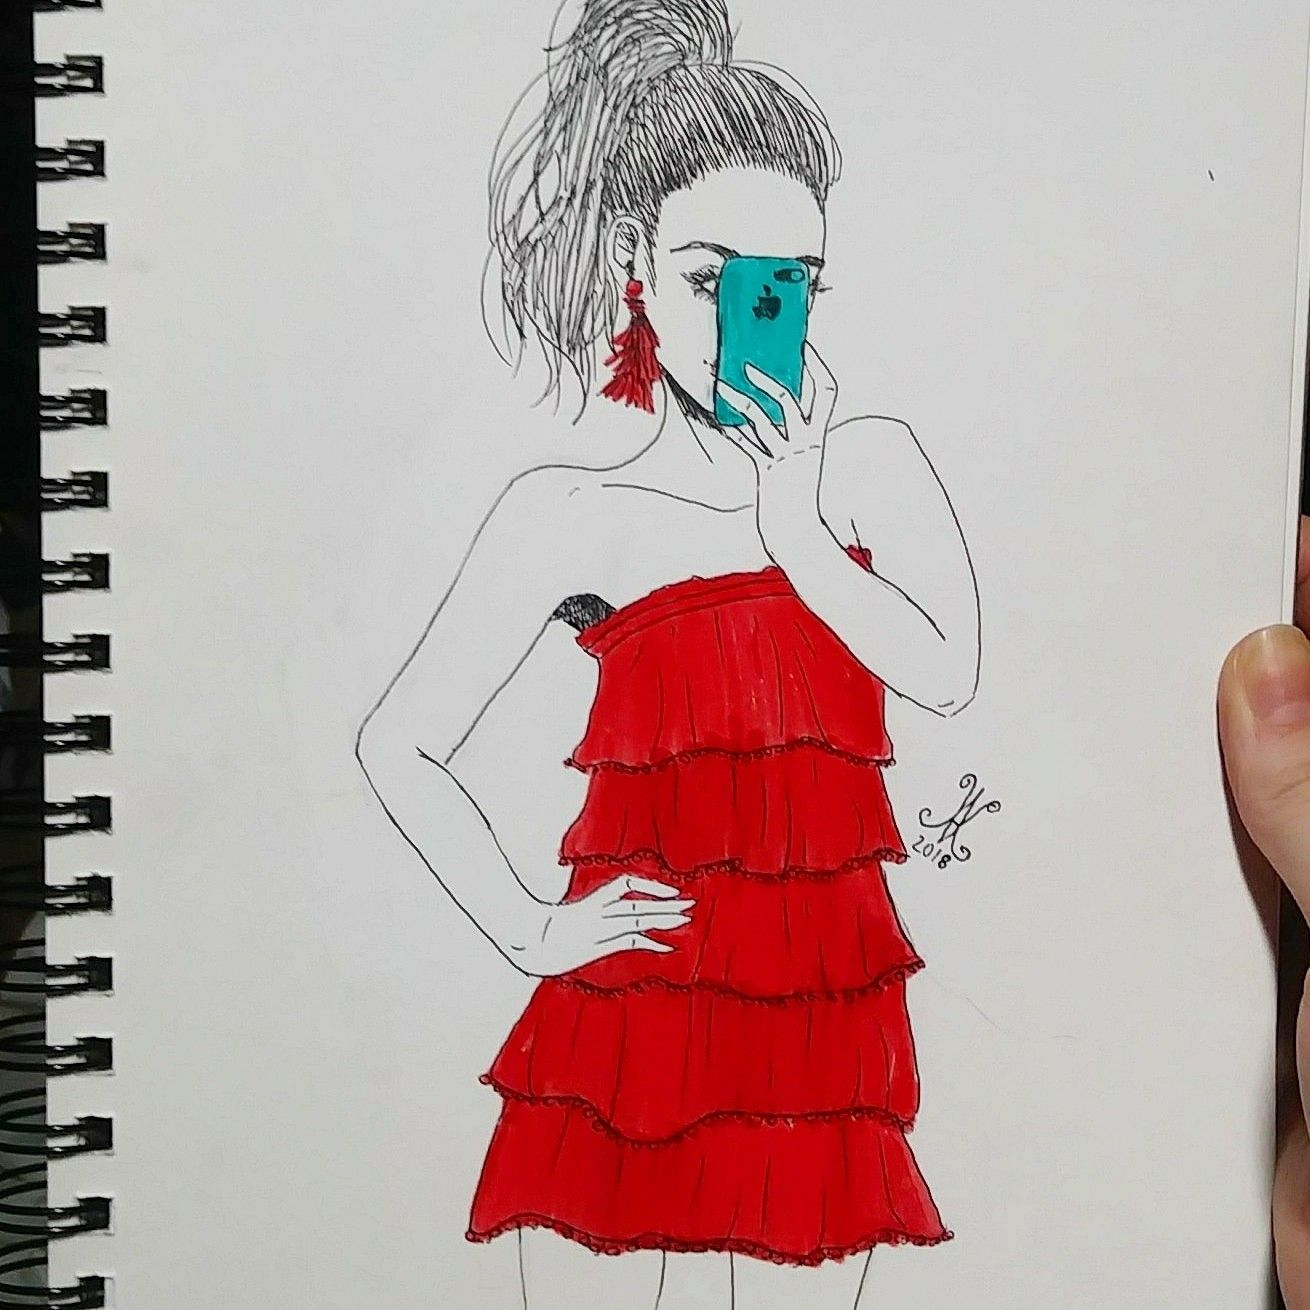 Pin By Andrea On Desenhos Tumblr Drawing Face Shapes Drawings Design Clothes Inspiration